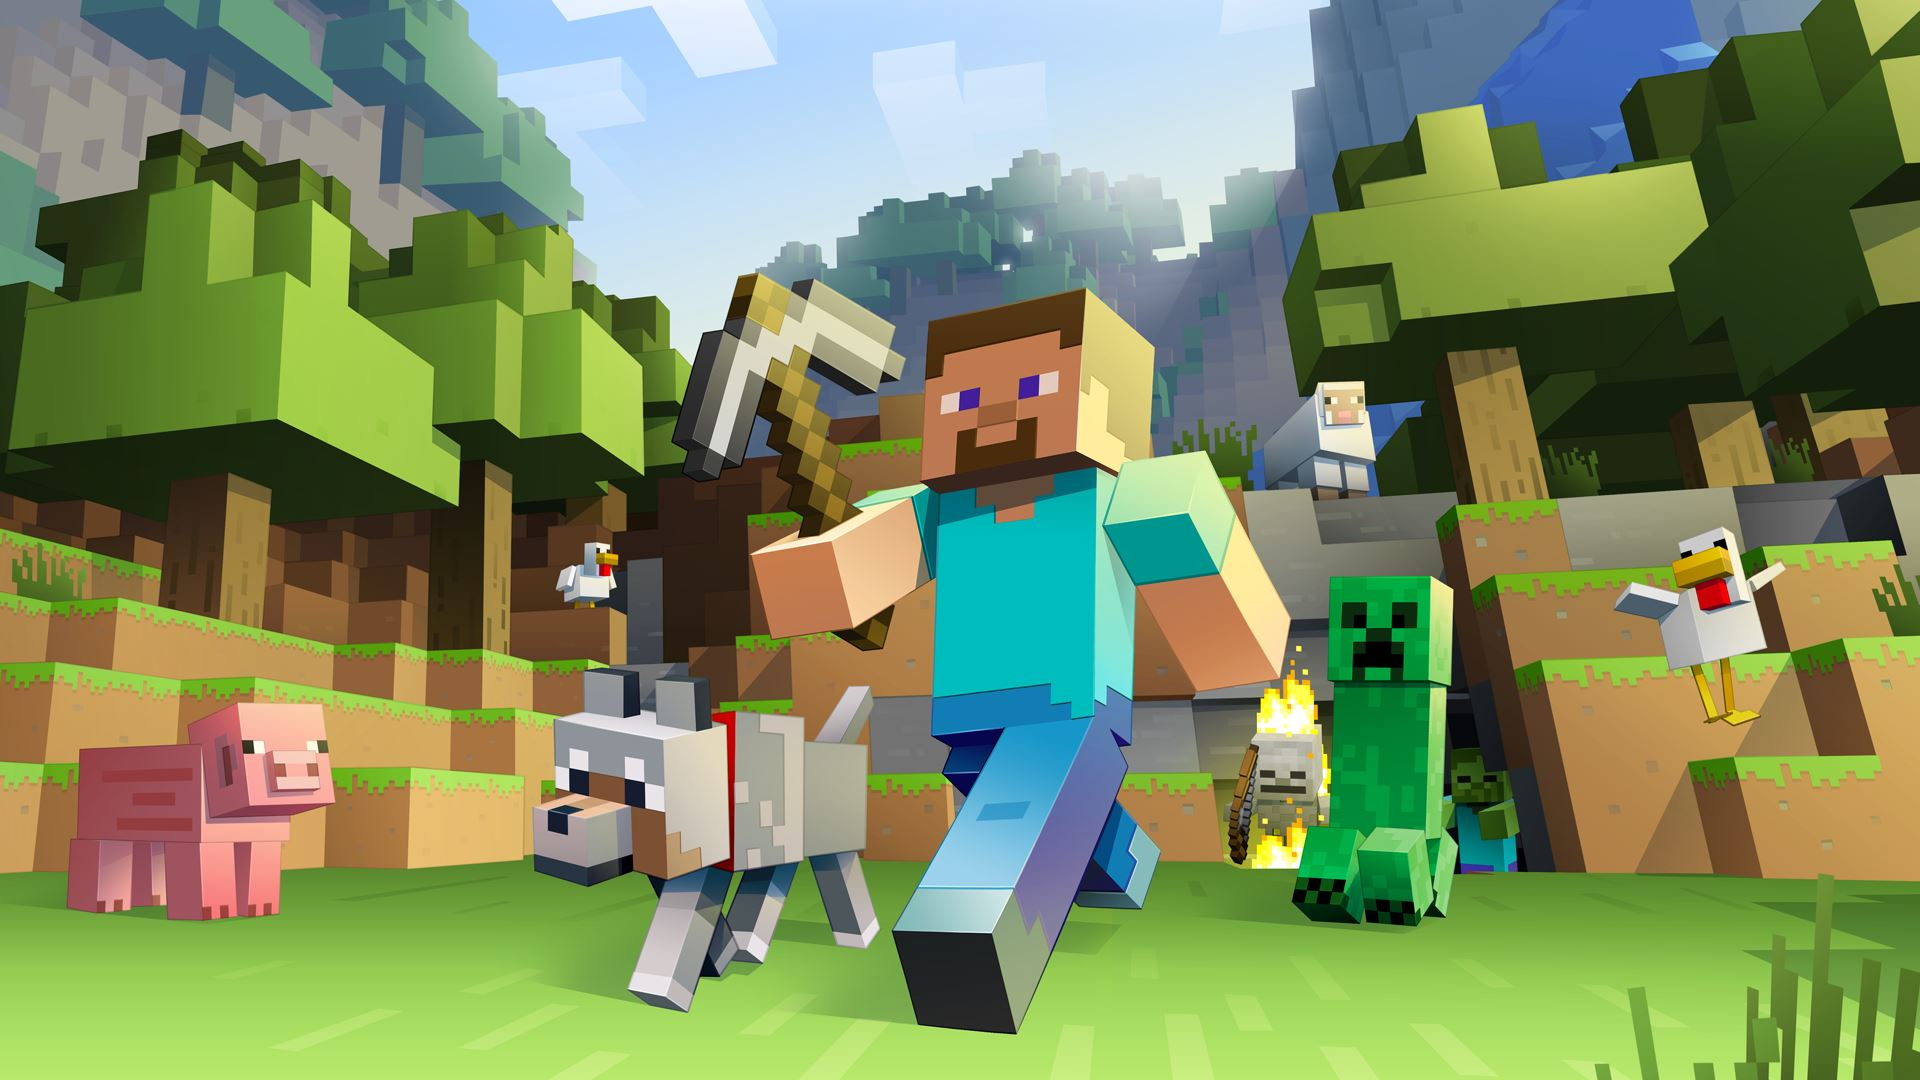 Download Wallpaper Minecraft Microsoft - no-minecraft-2-plans-right-now-mojang-and-microsoft-confirm-488818-2  You Should Have_712822.jpg